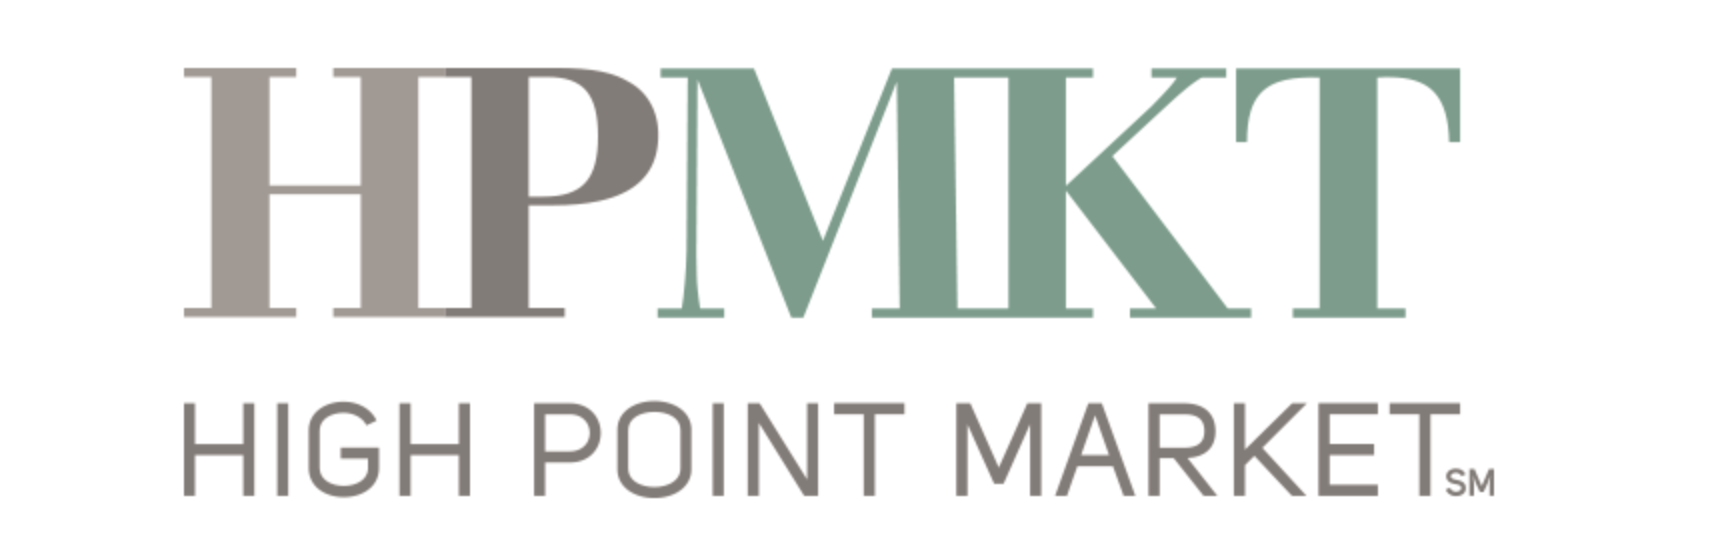 Best Image of High Point Market Logo #HPMKT